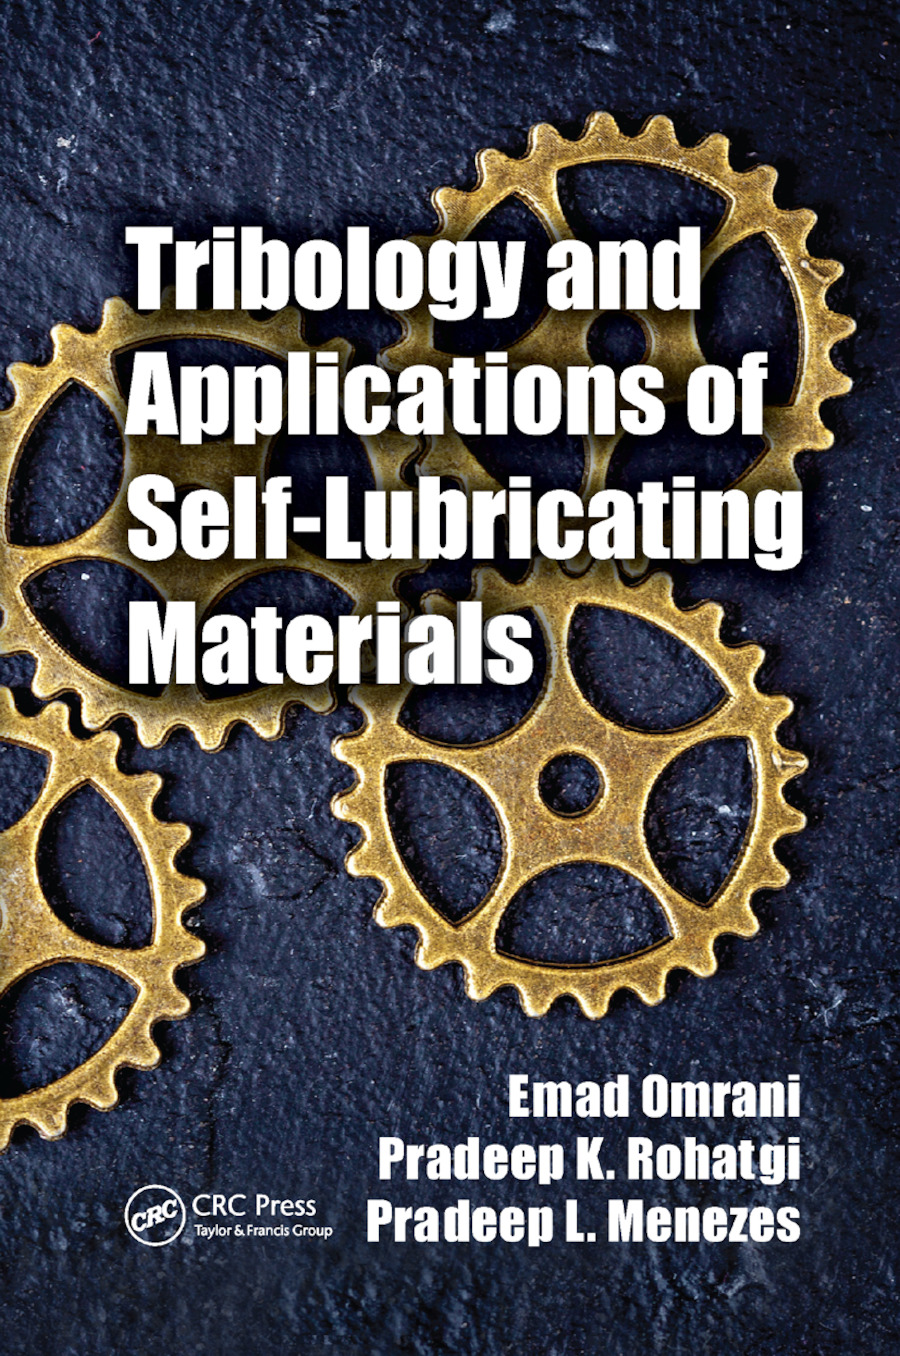 Tribology and Applications of Self-Lubricating Materials: 1st Edition (Paperback) book cover